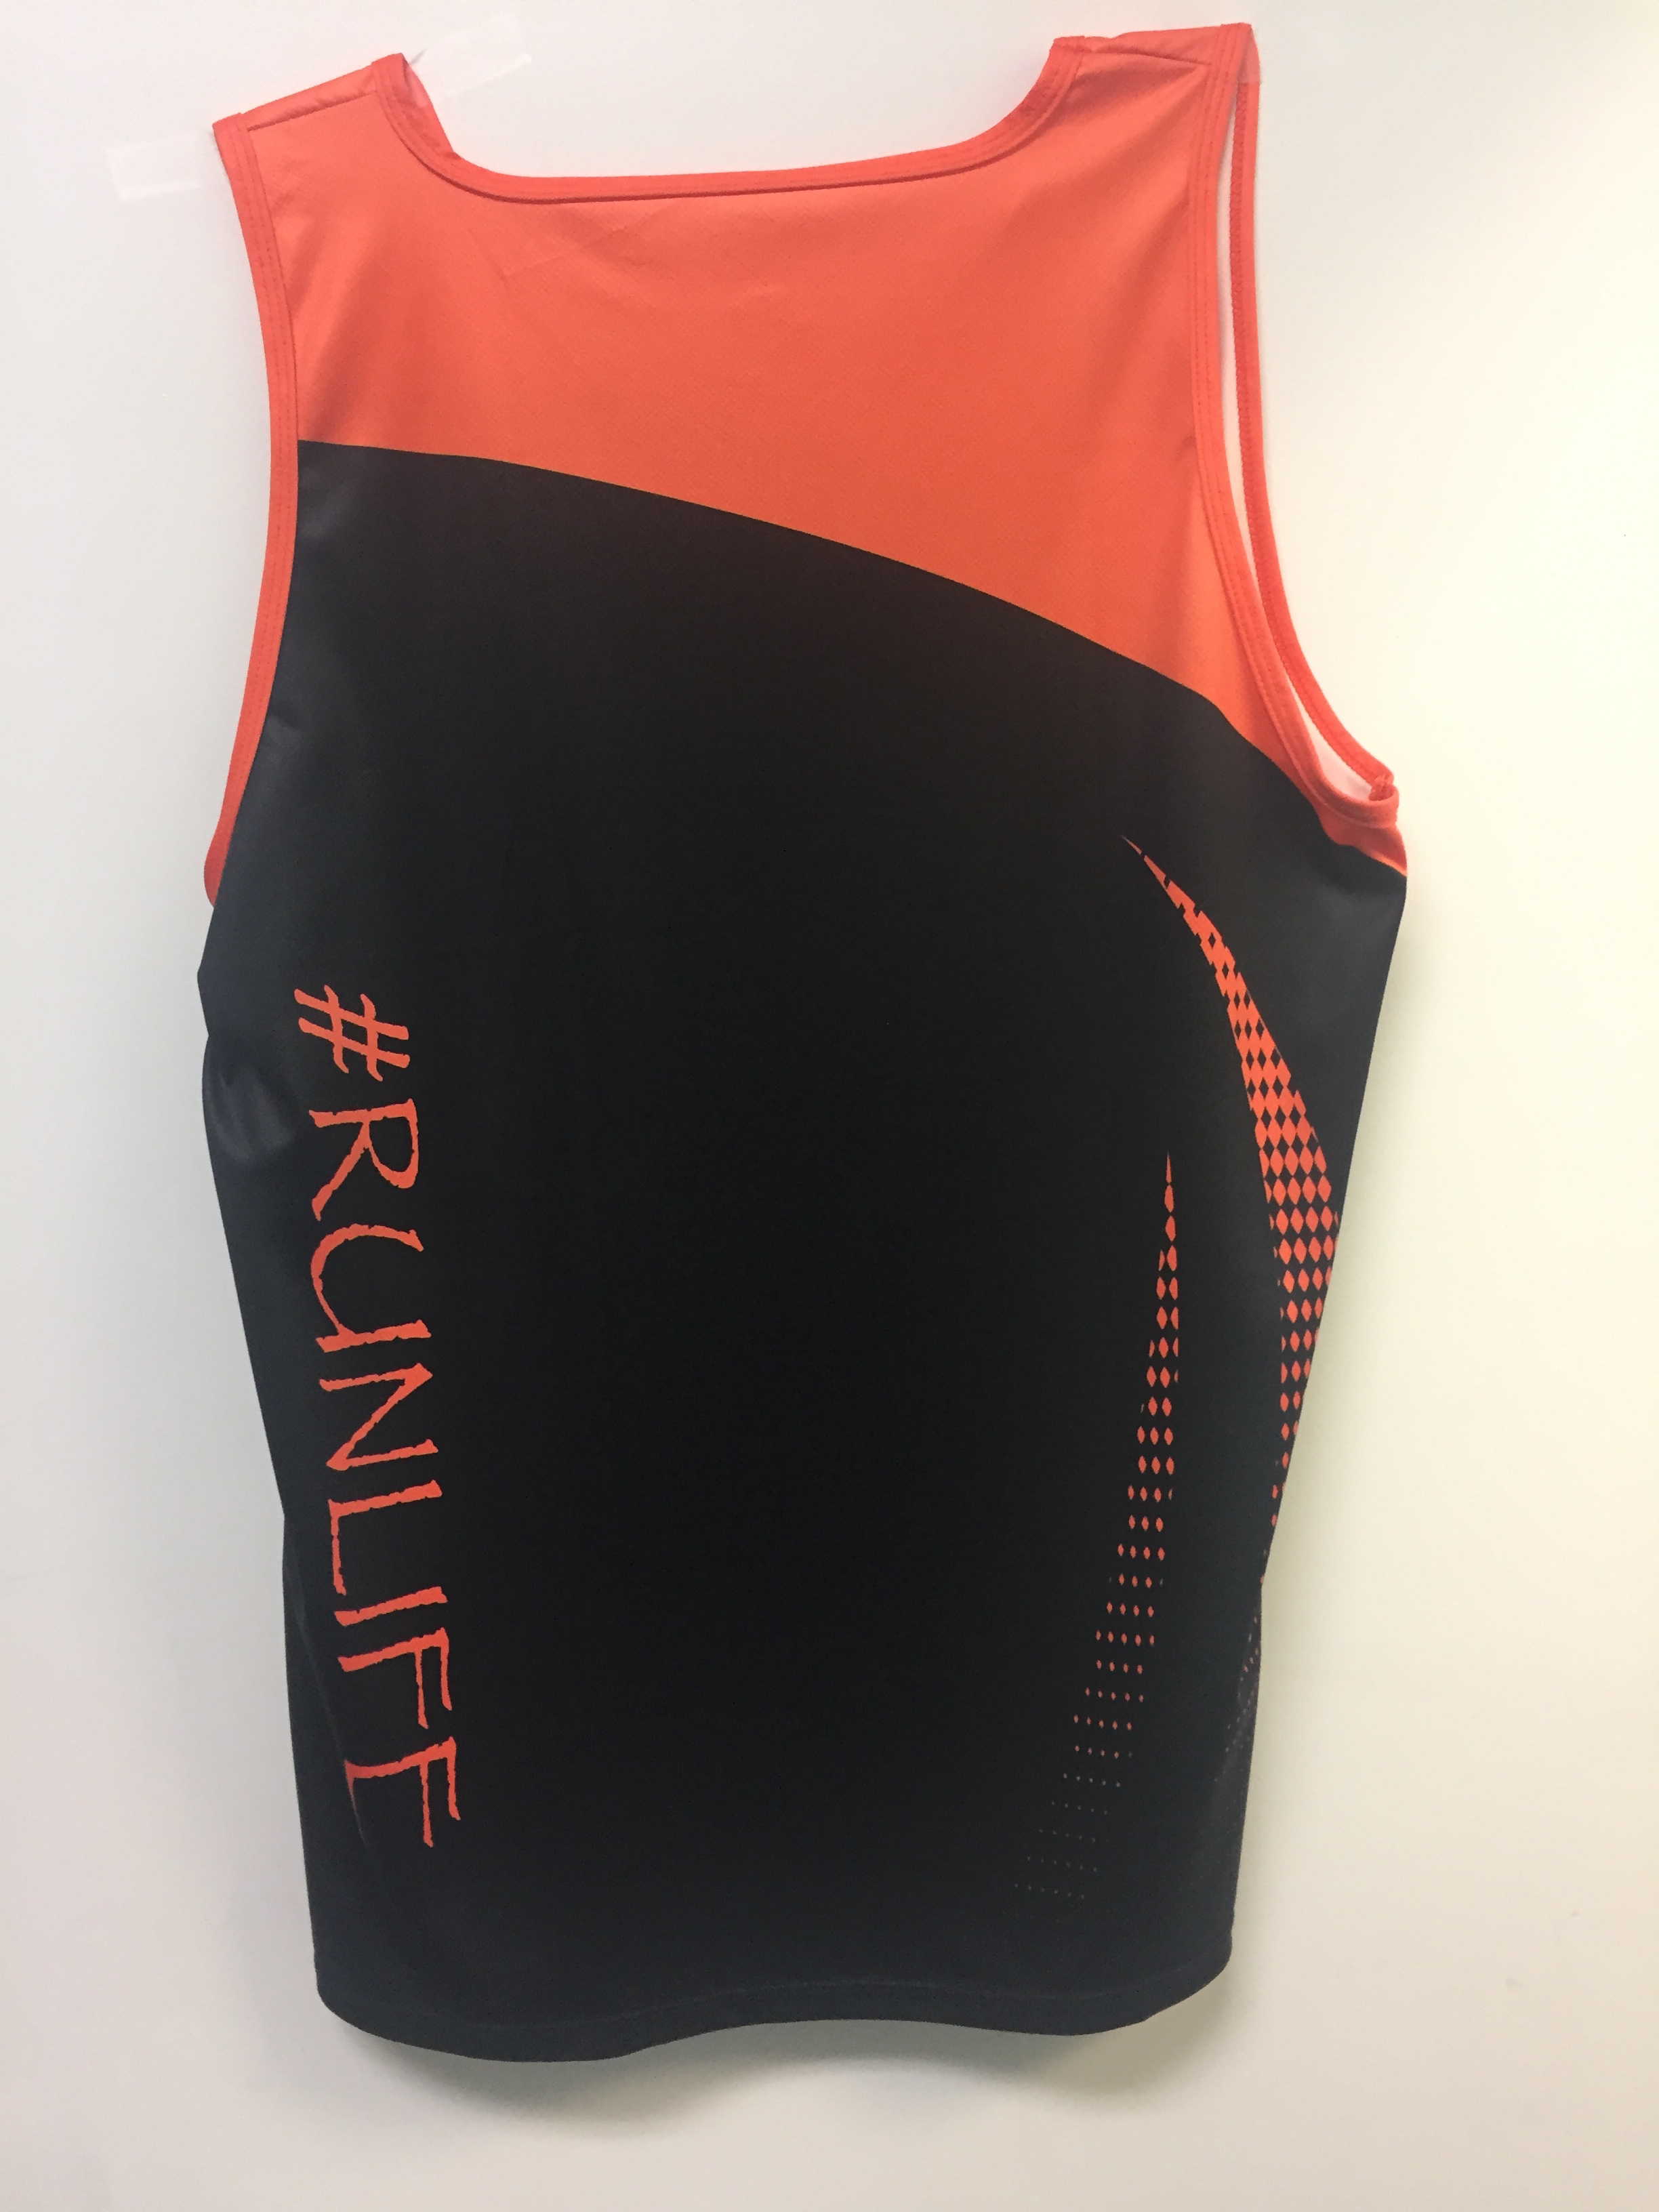 Runner's Depot #Runlife Singlet Men's